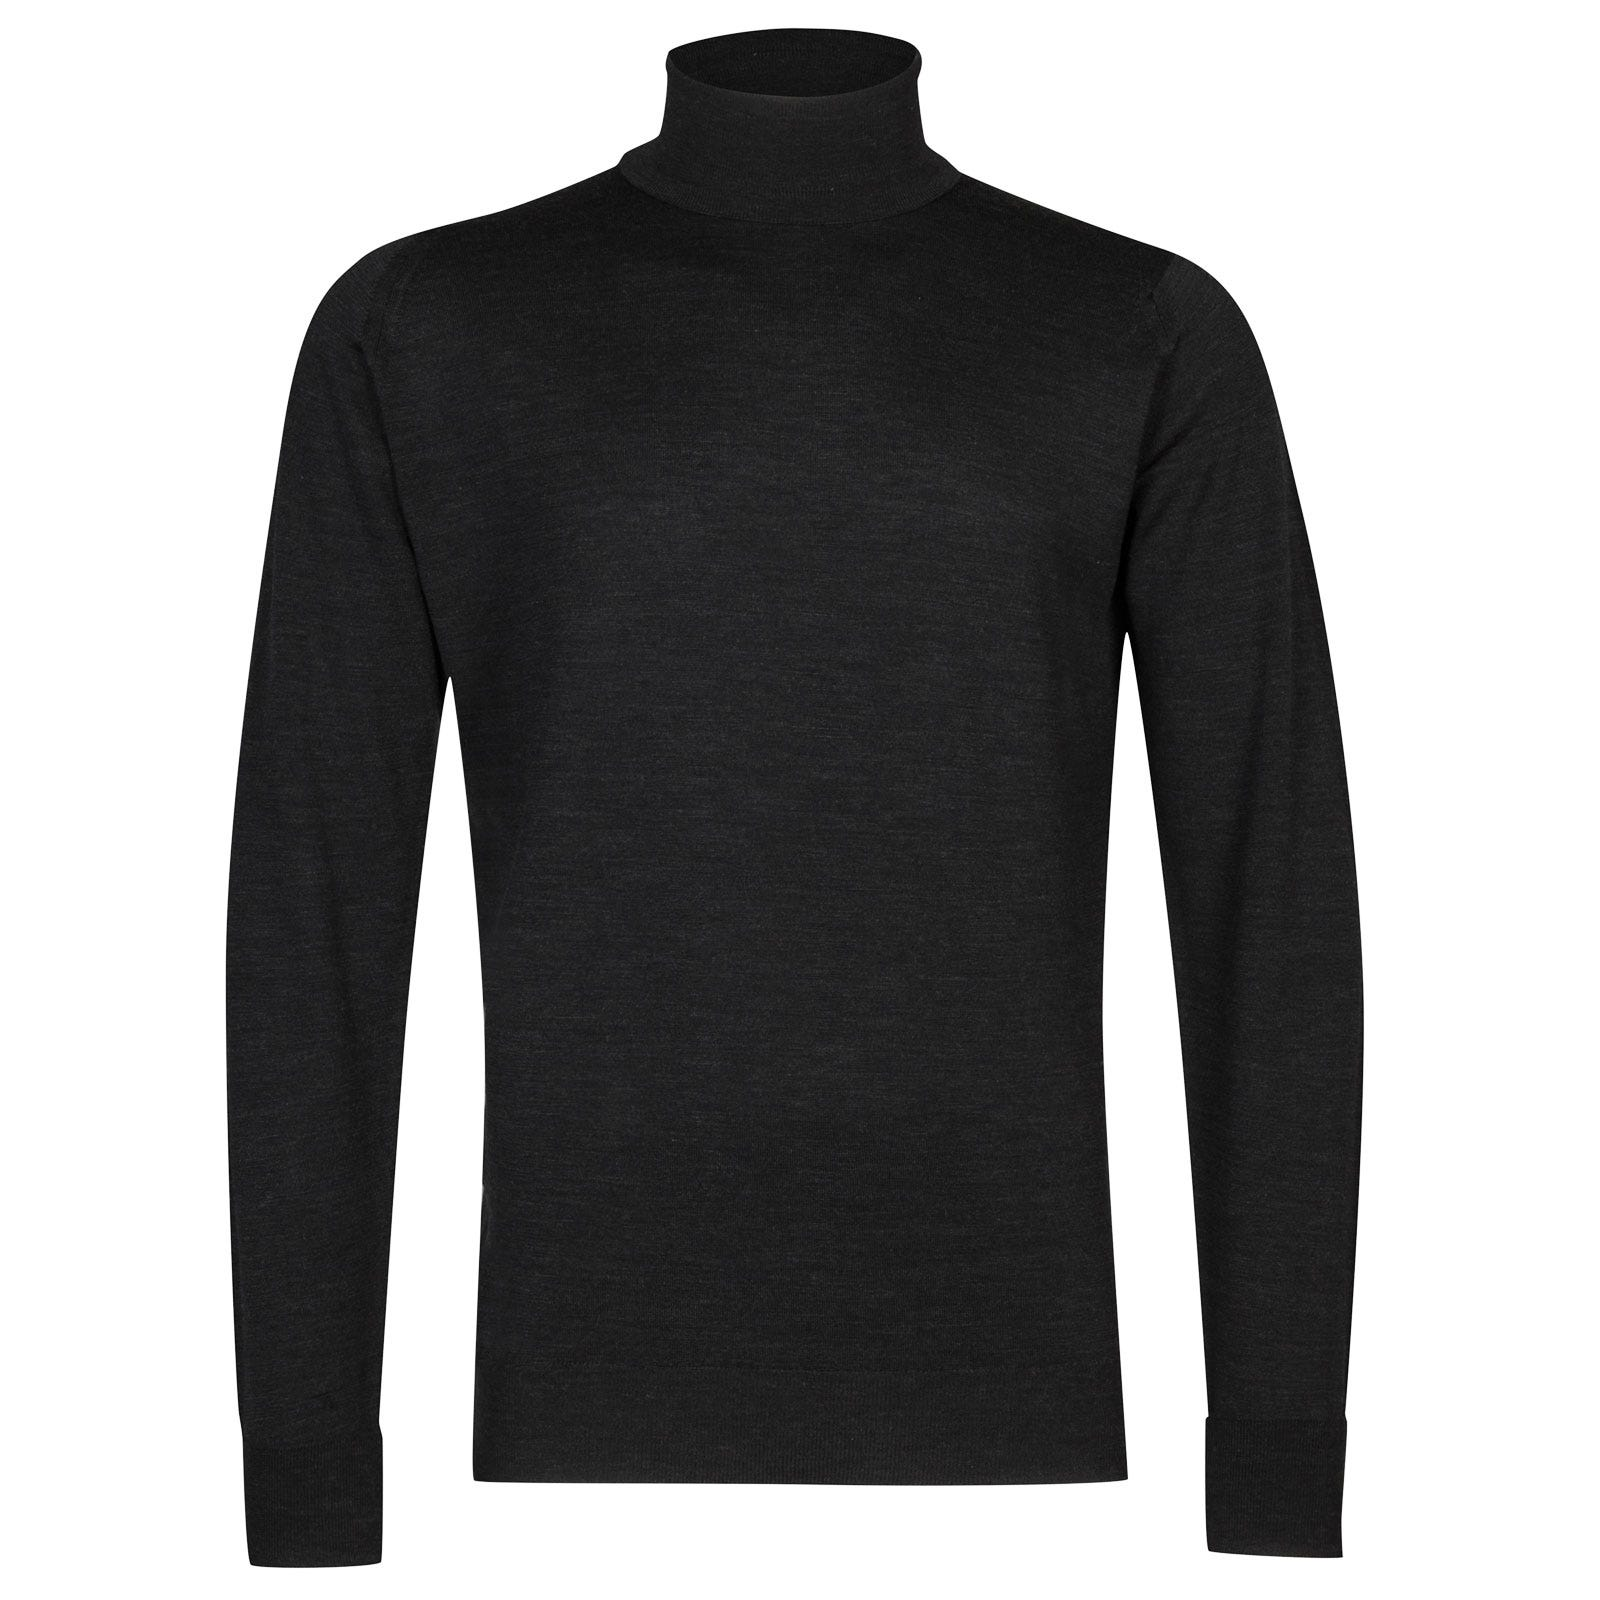 John Smedley richards Merino Wool Pullover in Hepburn Smoke-XL